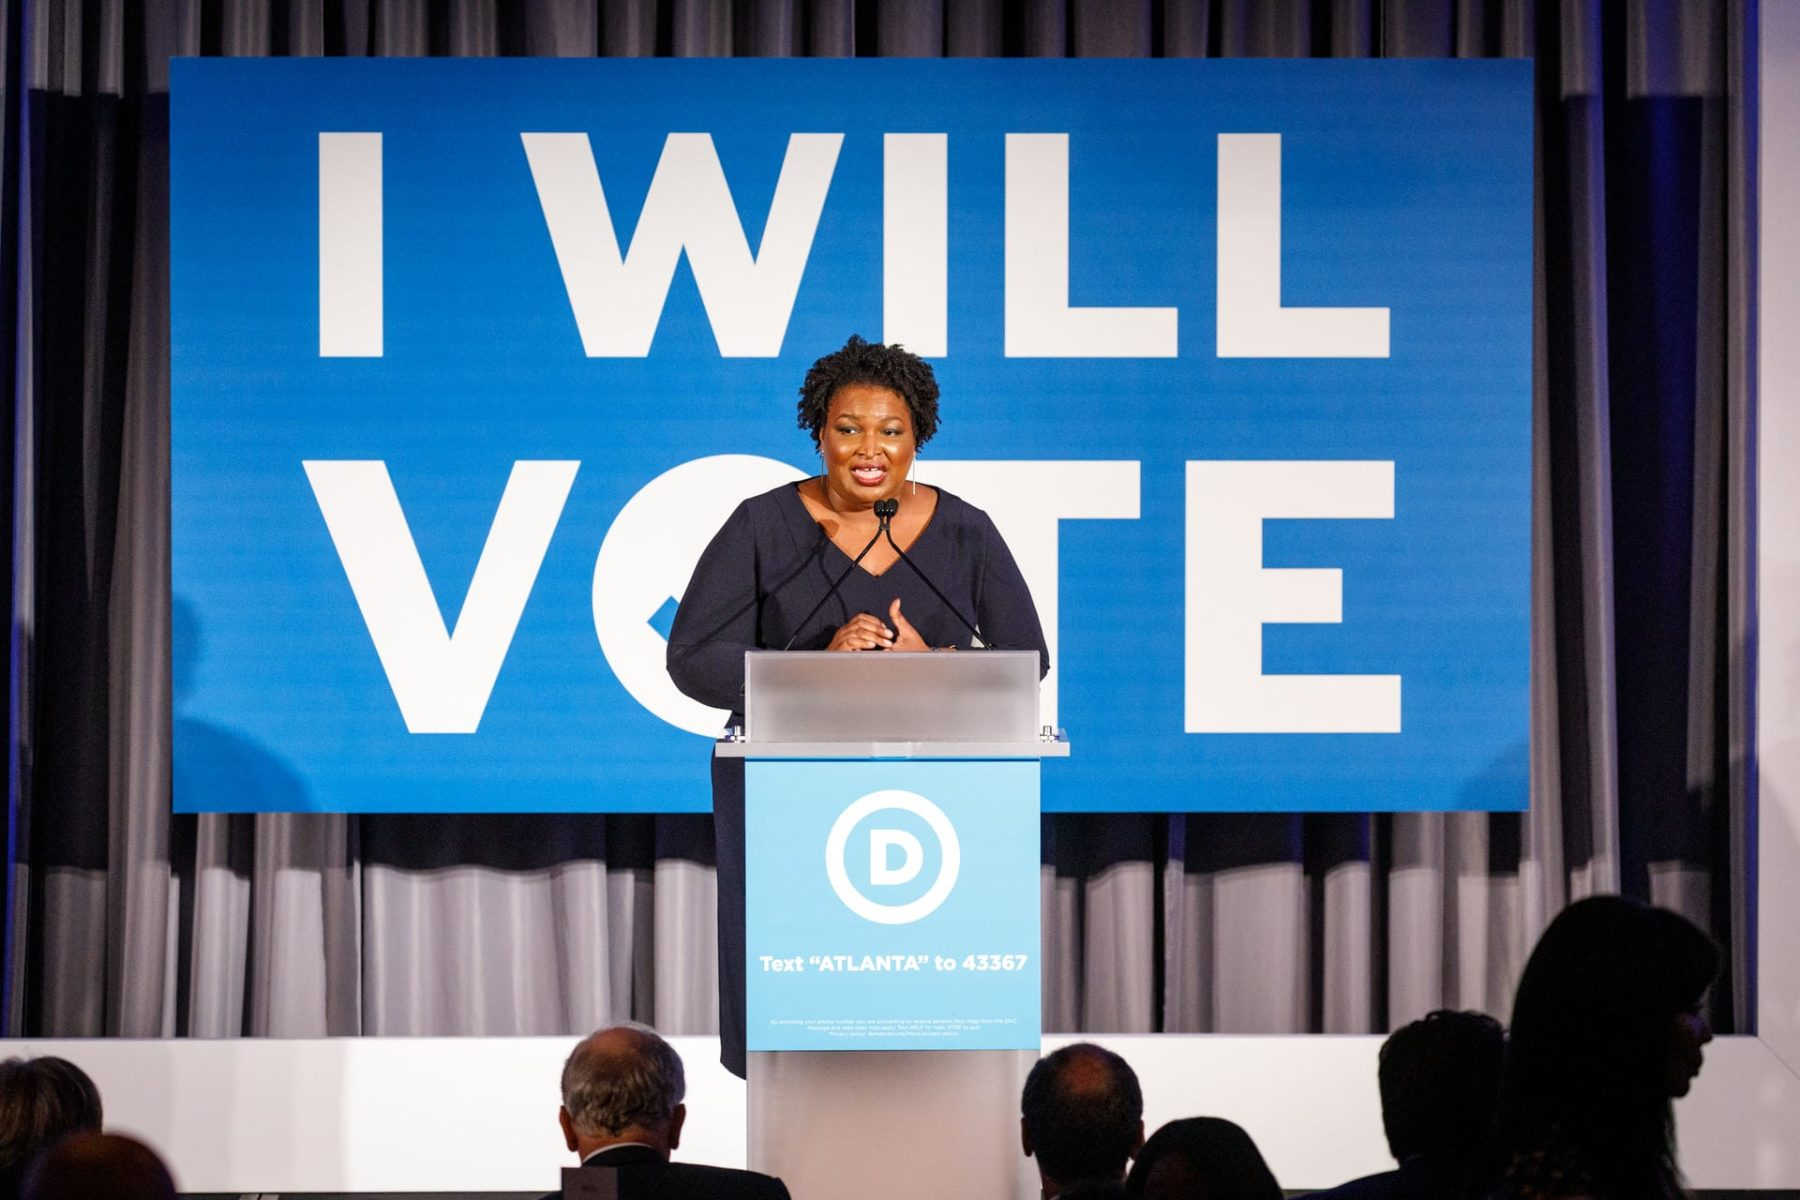 Stacey Abrams speaks at a podium.